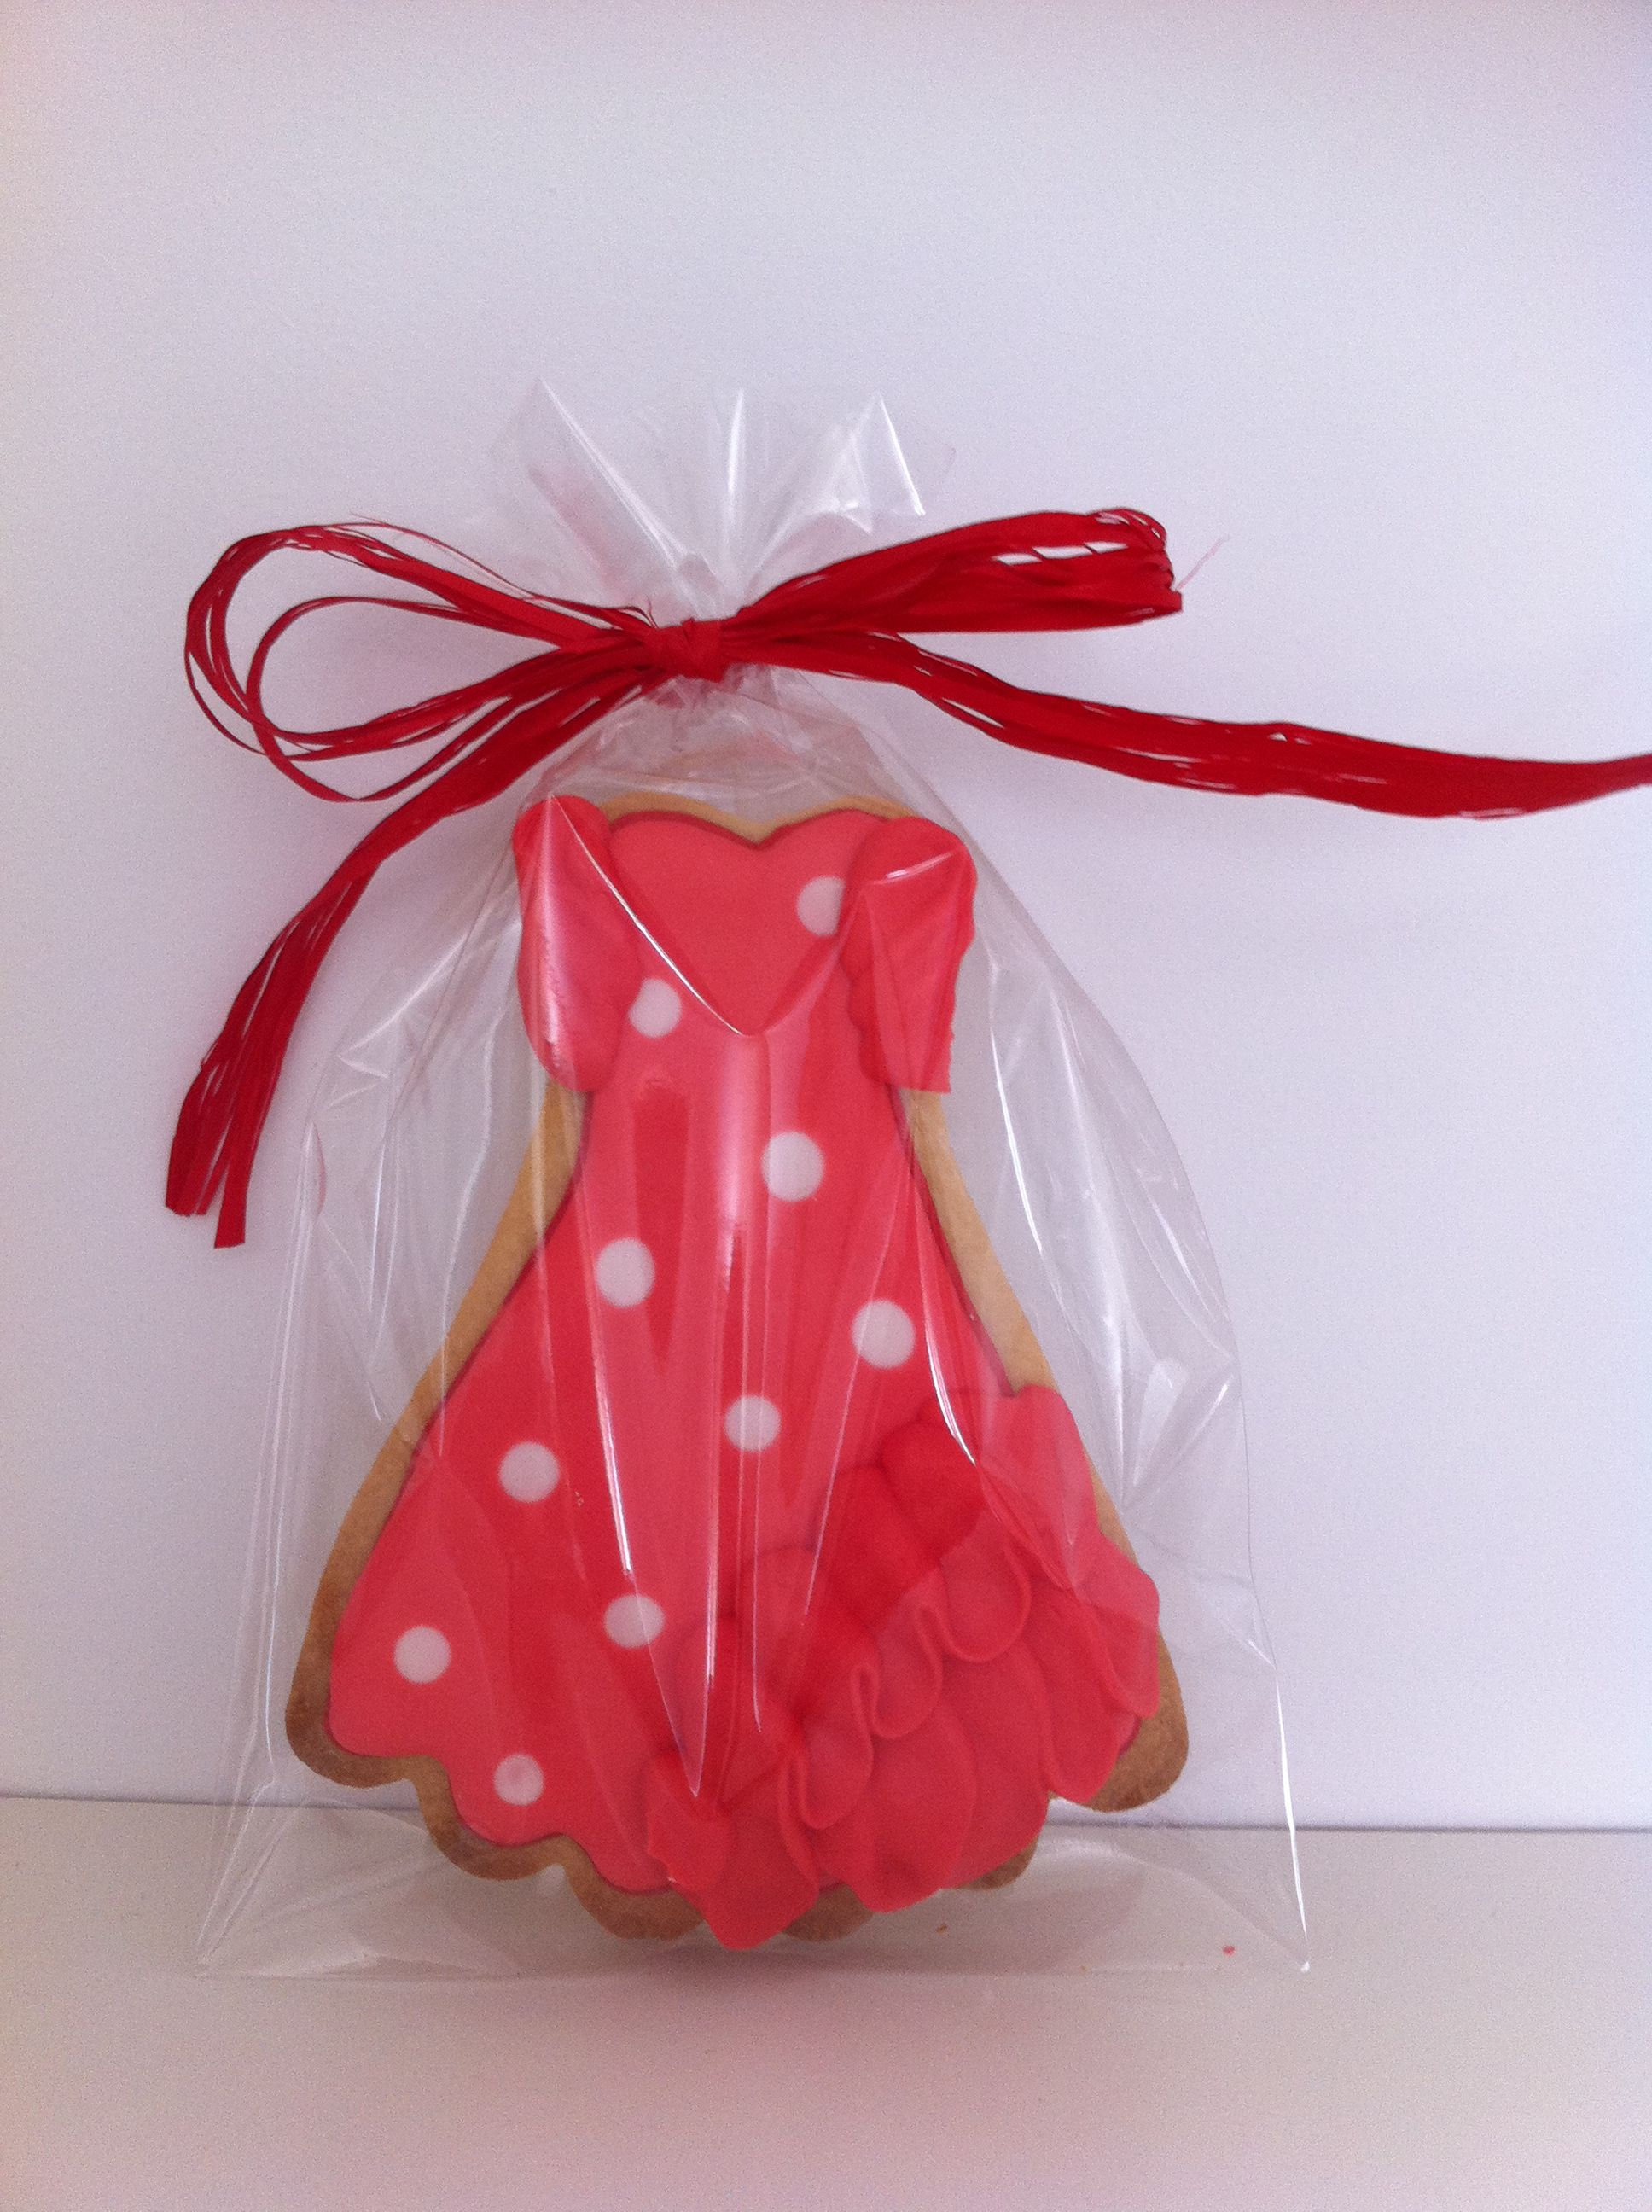 Cursos Galletas Decoradas Madrid Galletas Personalizadas Y Decoradas Como Un Traje De